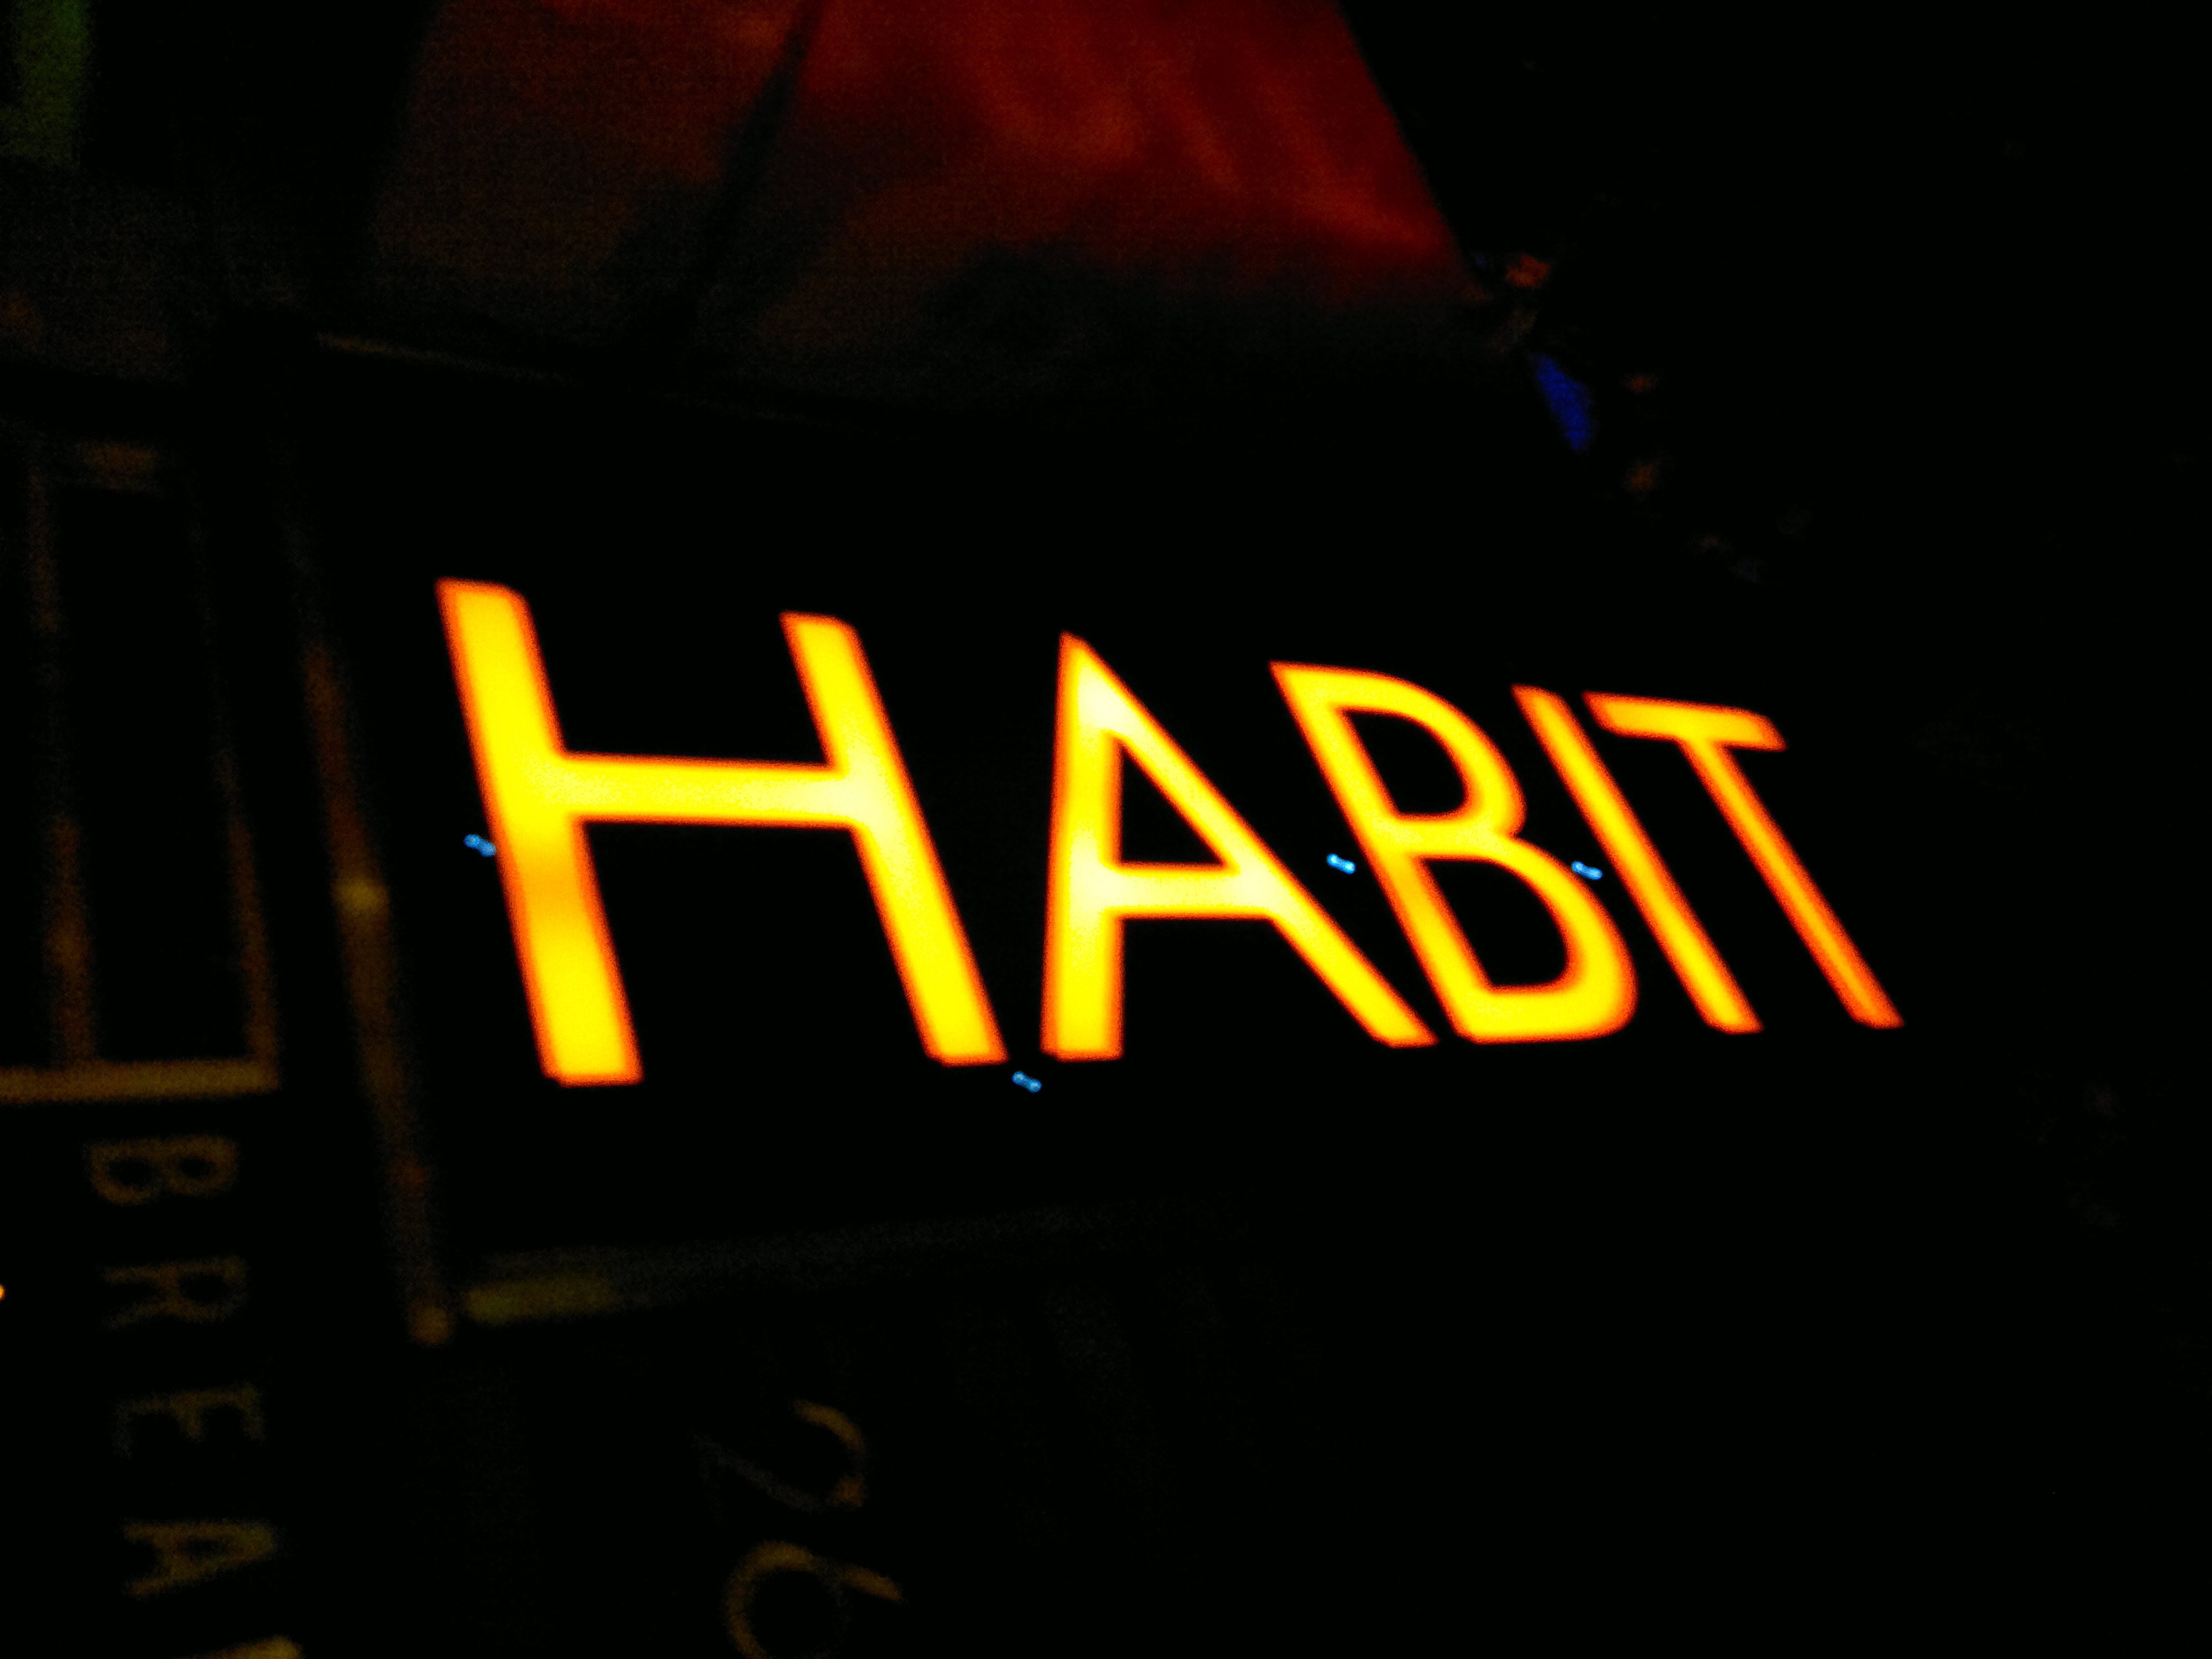 Picture of a neon sign that says Habit